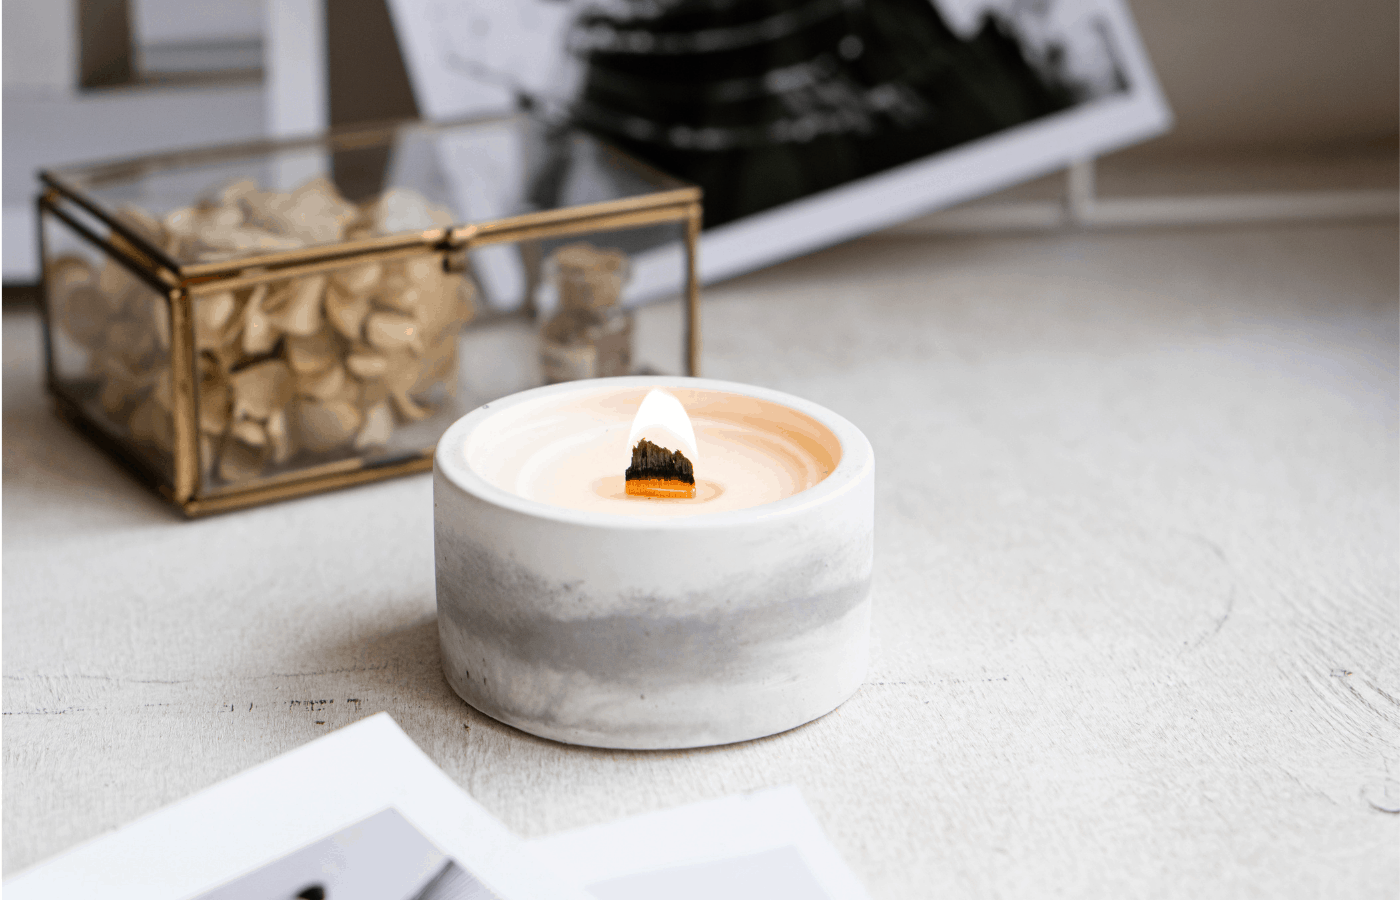 how to use a candle when the wick is gone